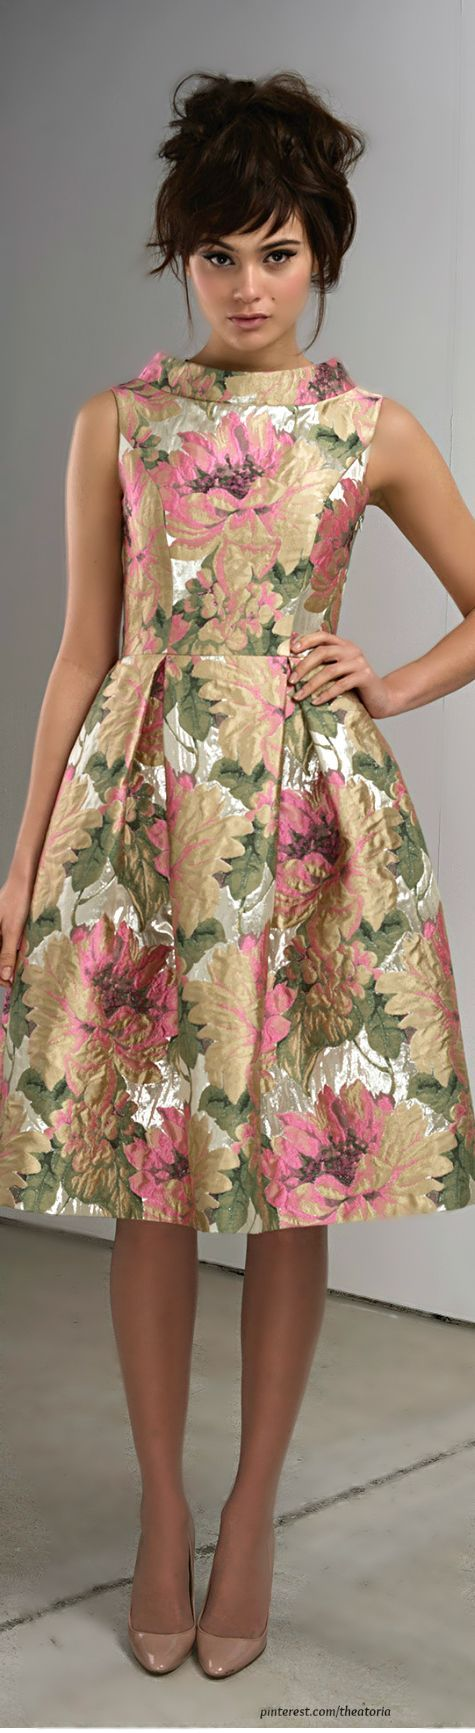 Garden party outfit dresses, Brunch outfits